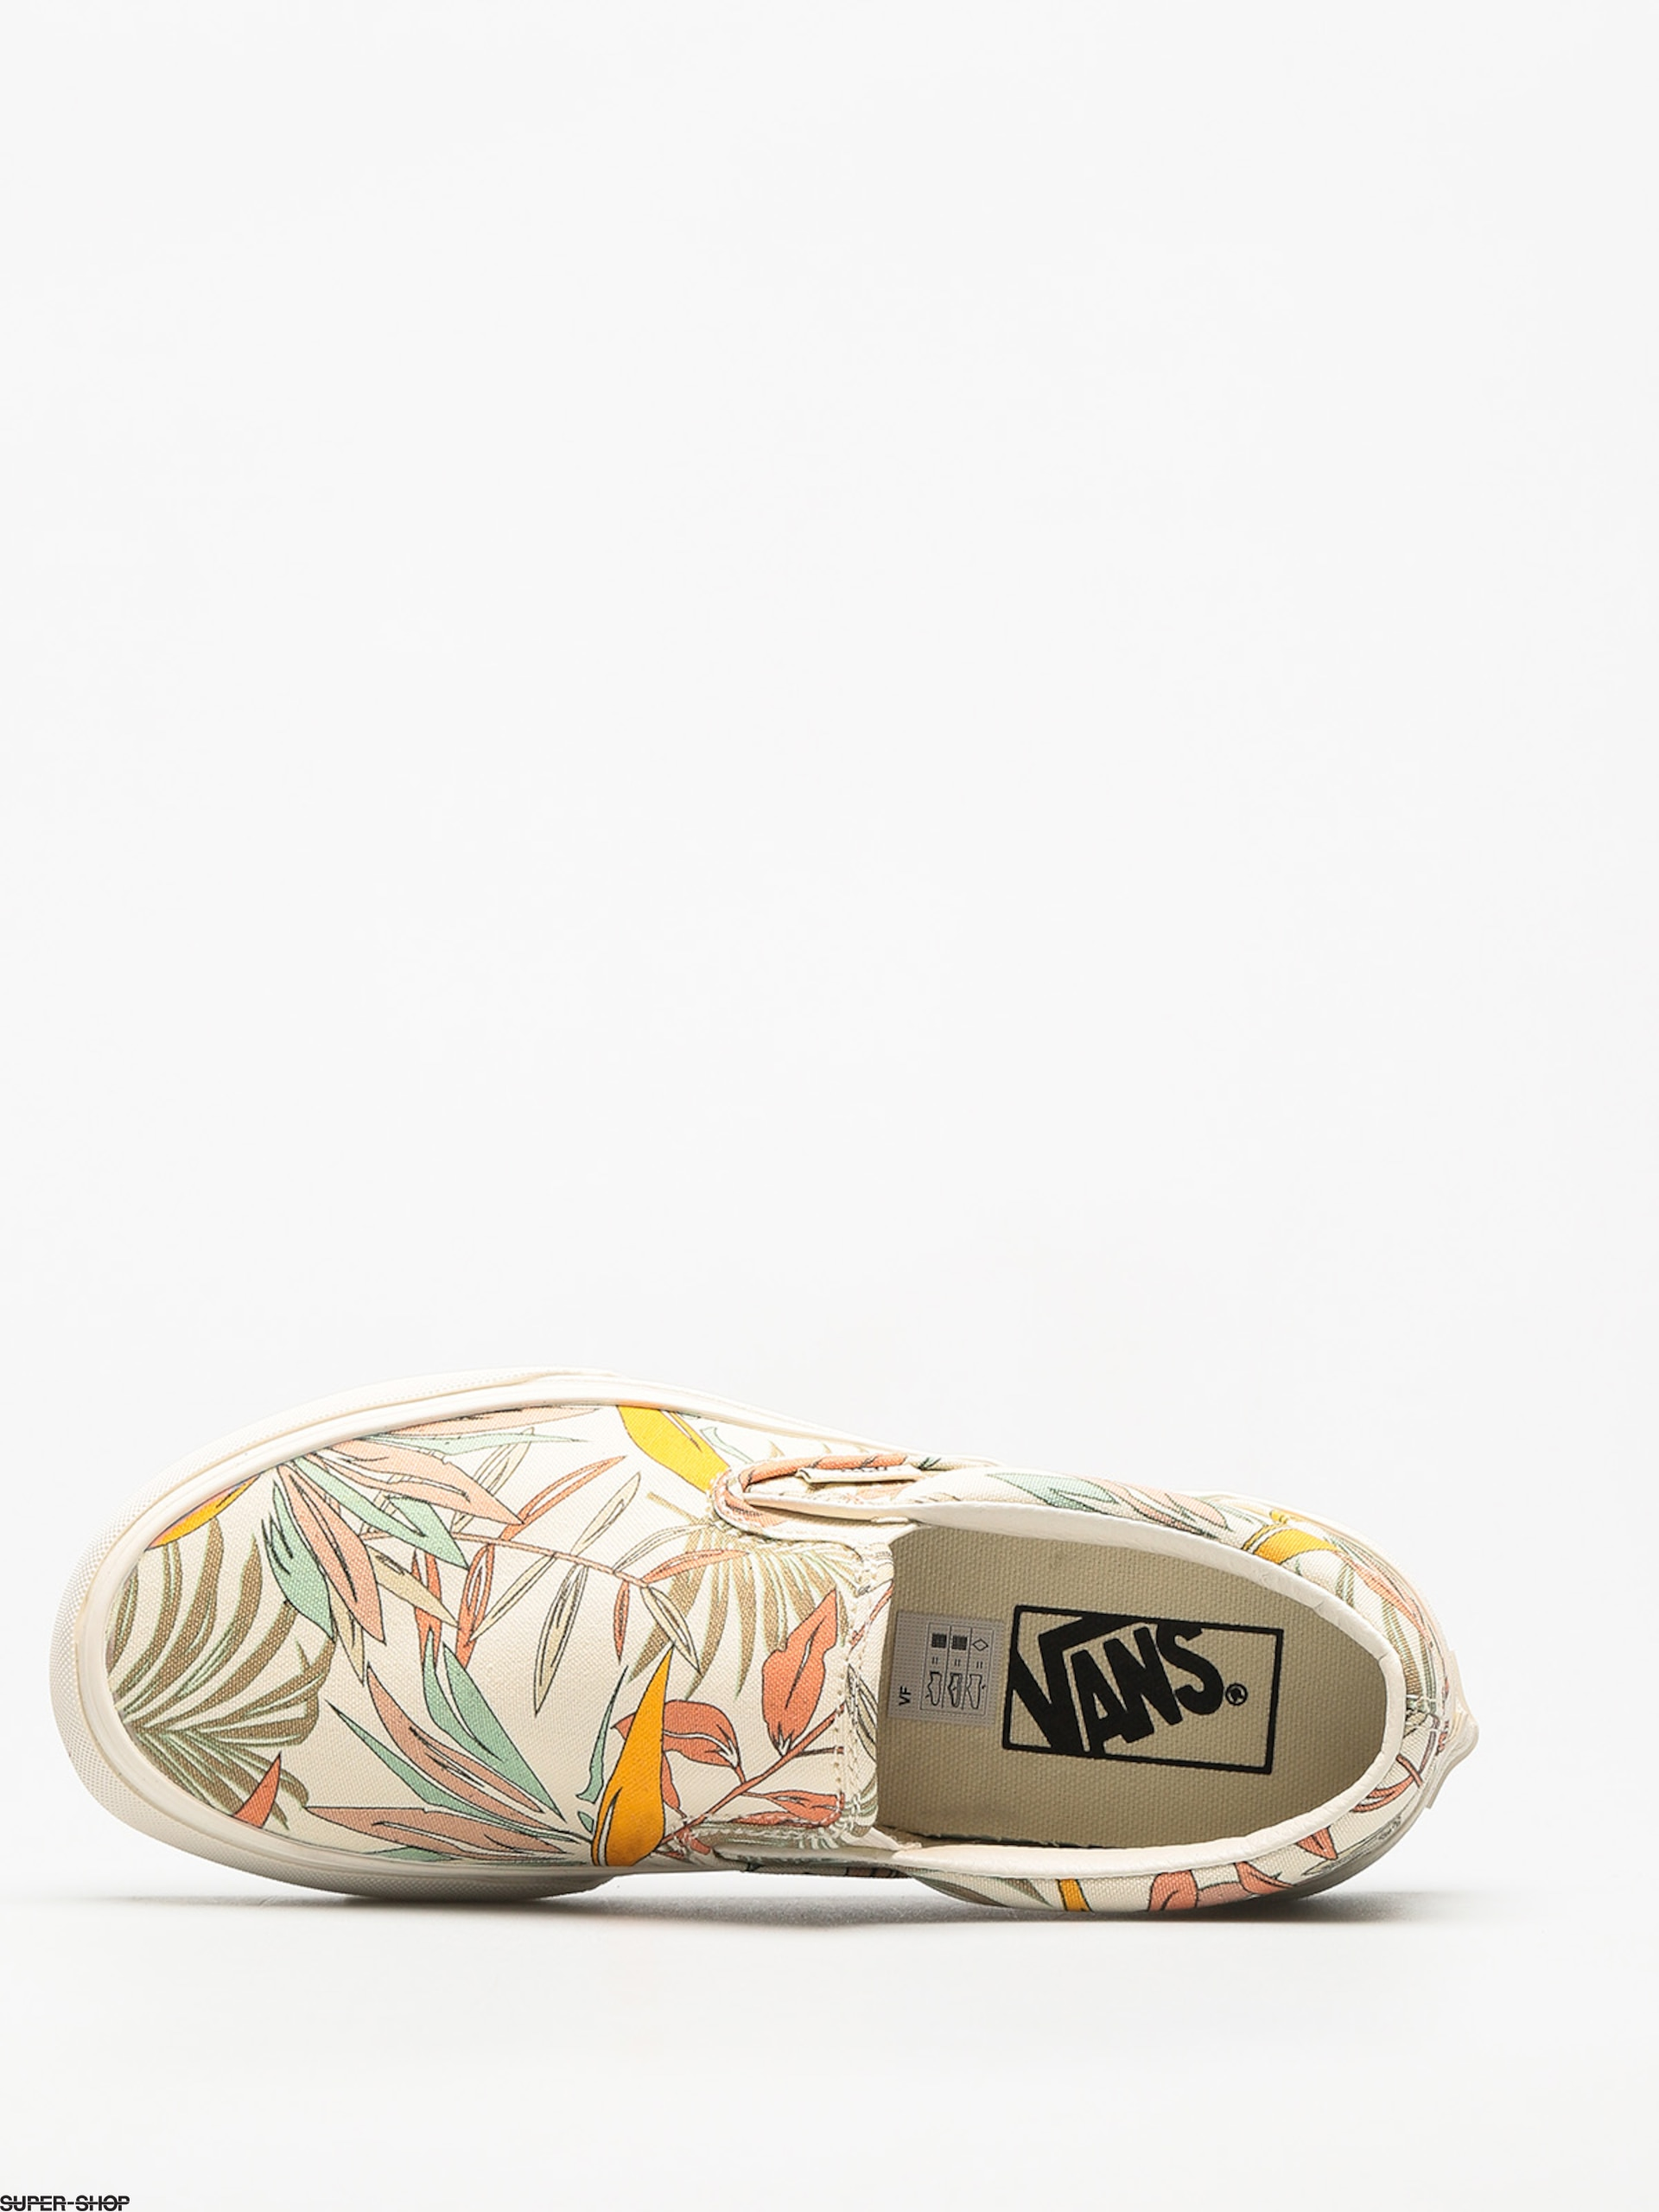 df20af1923ce54 Vans Shoes Classic Slip On (california floral marshmallow marshmallow)